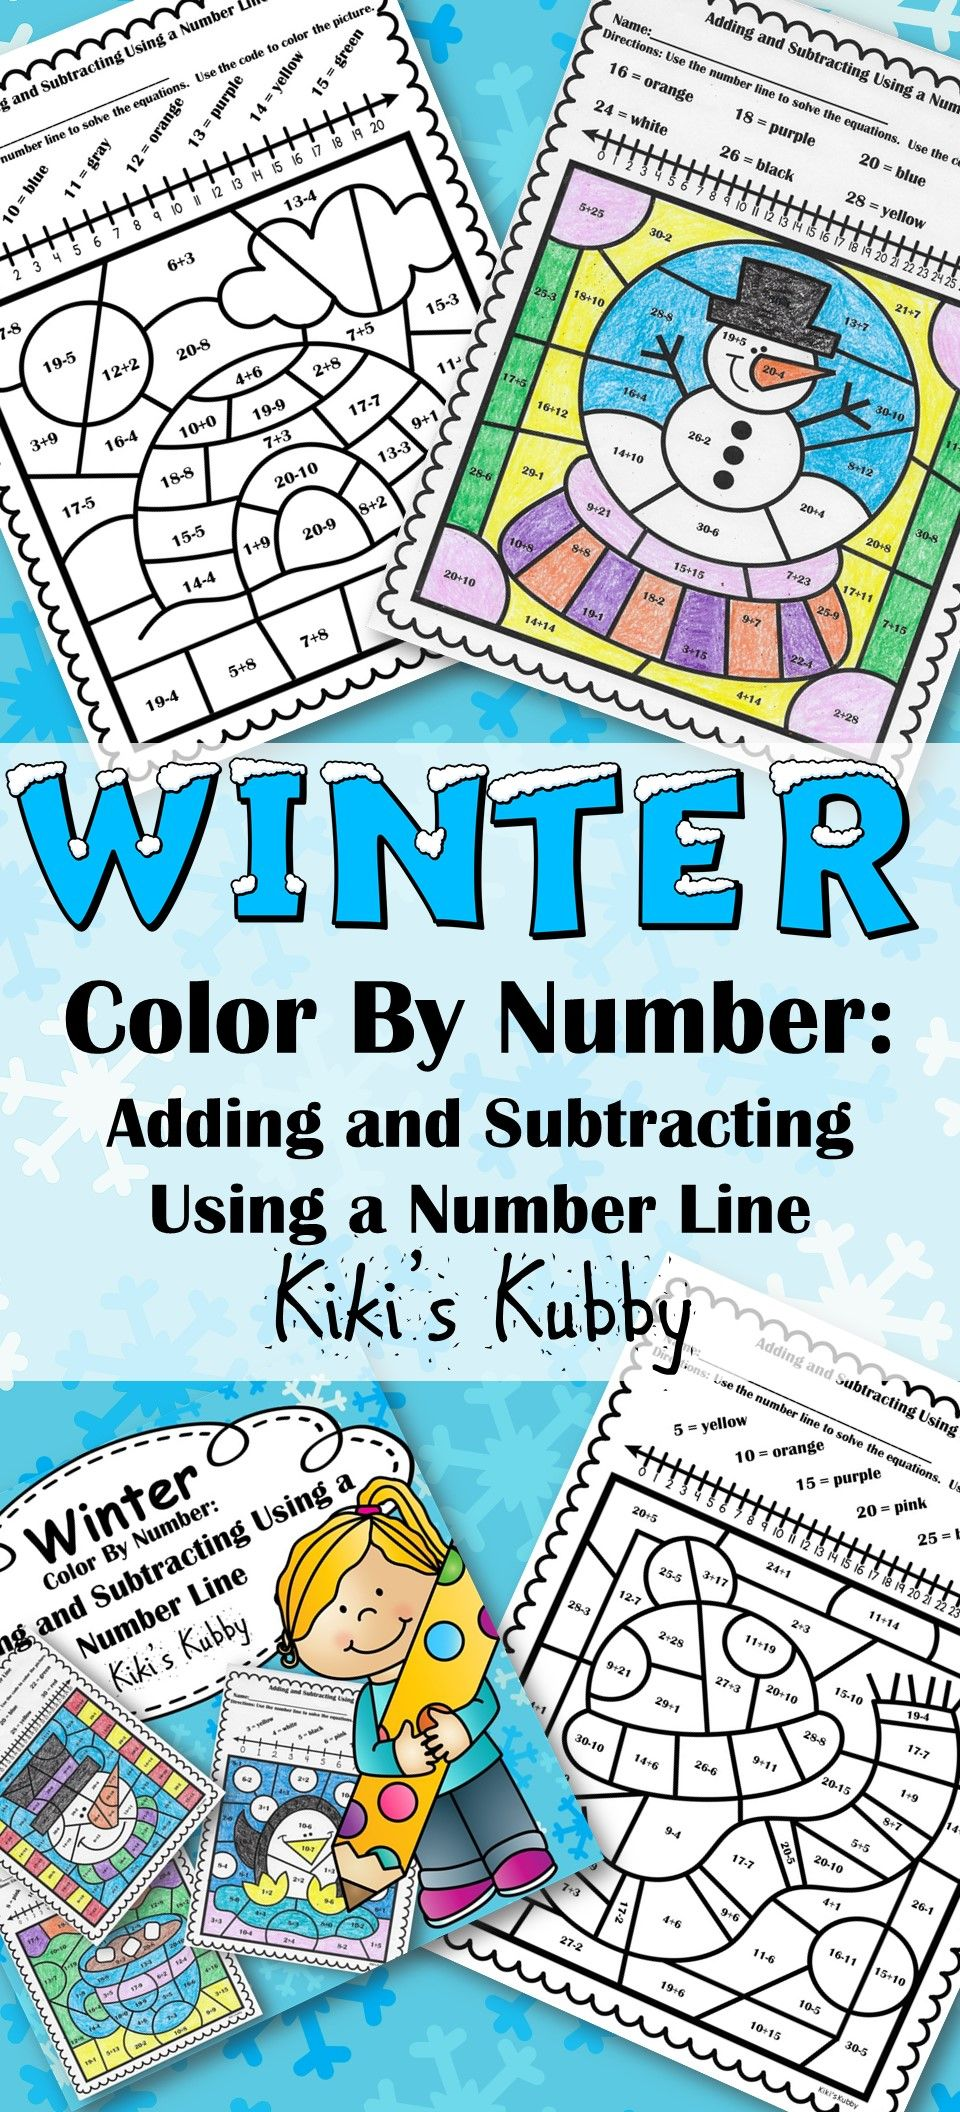 Winter: Color By Number Adding and Subtracting Using a Number Line ...